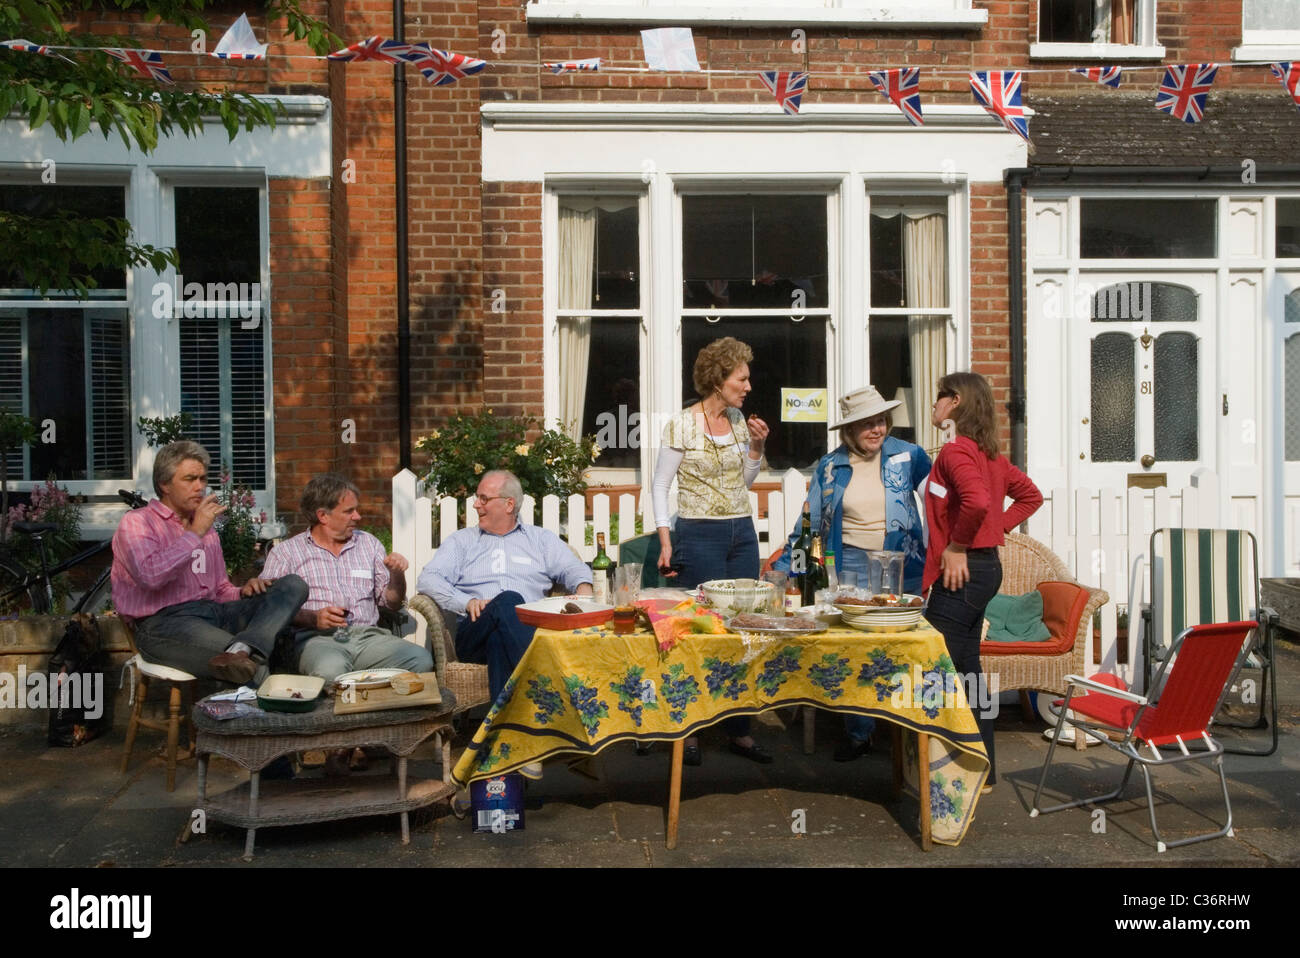 Neighbours Neighbors Royal Wedding Street Party. Barnes London UK. 29 April 2011 HOMER SYKES - Stock Image